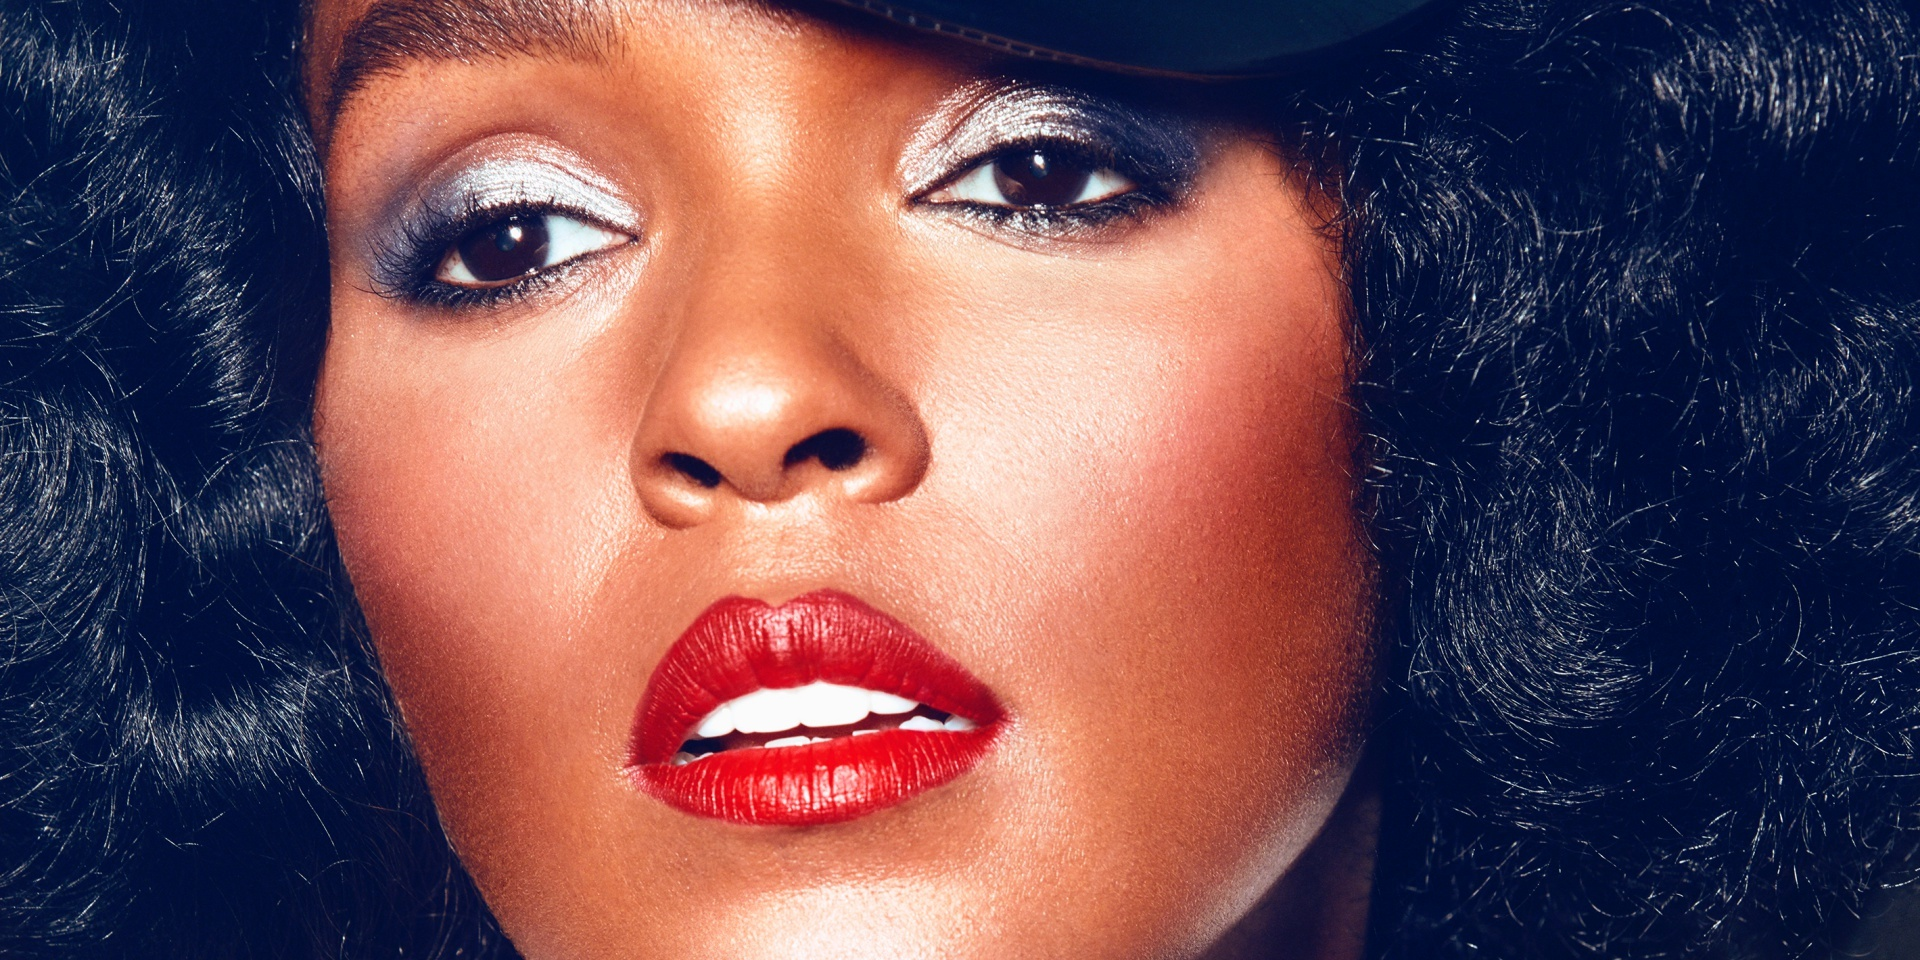 Janelle Monae's Wondaland Pictures secures a first-look production deal with Universal